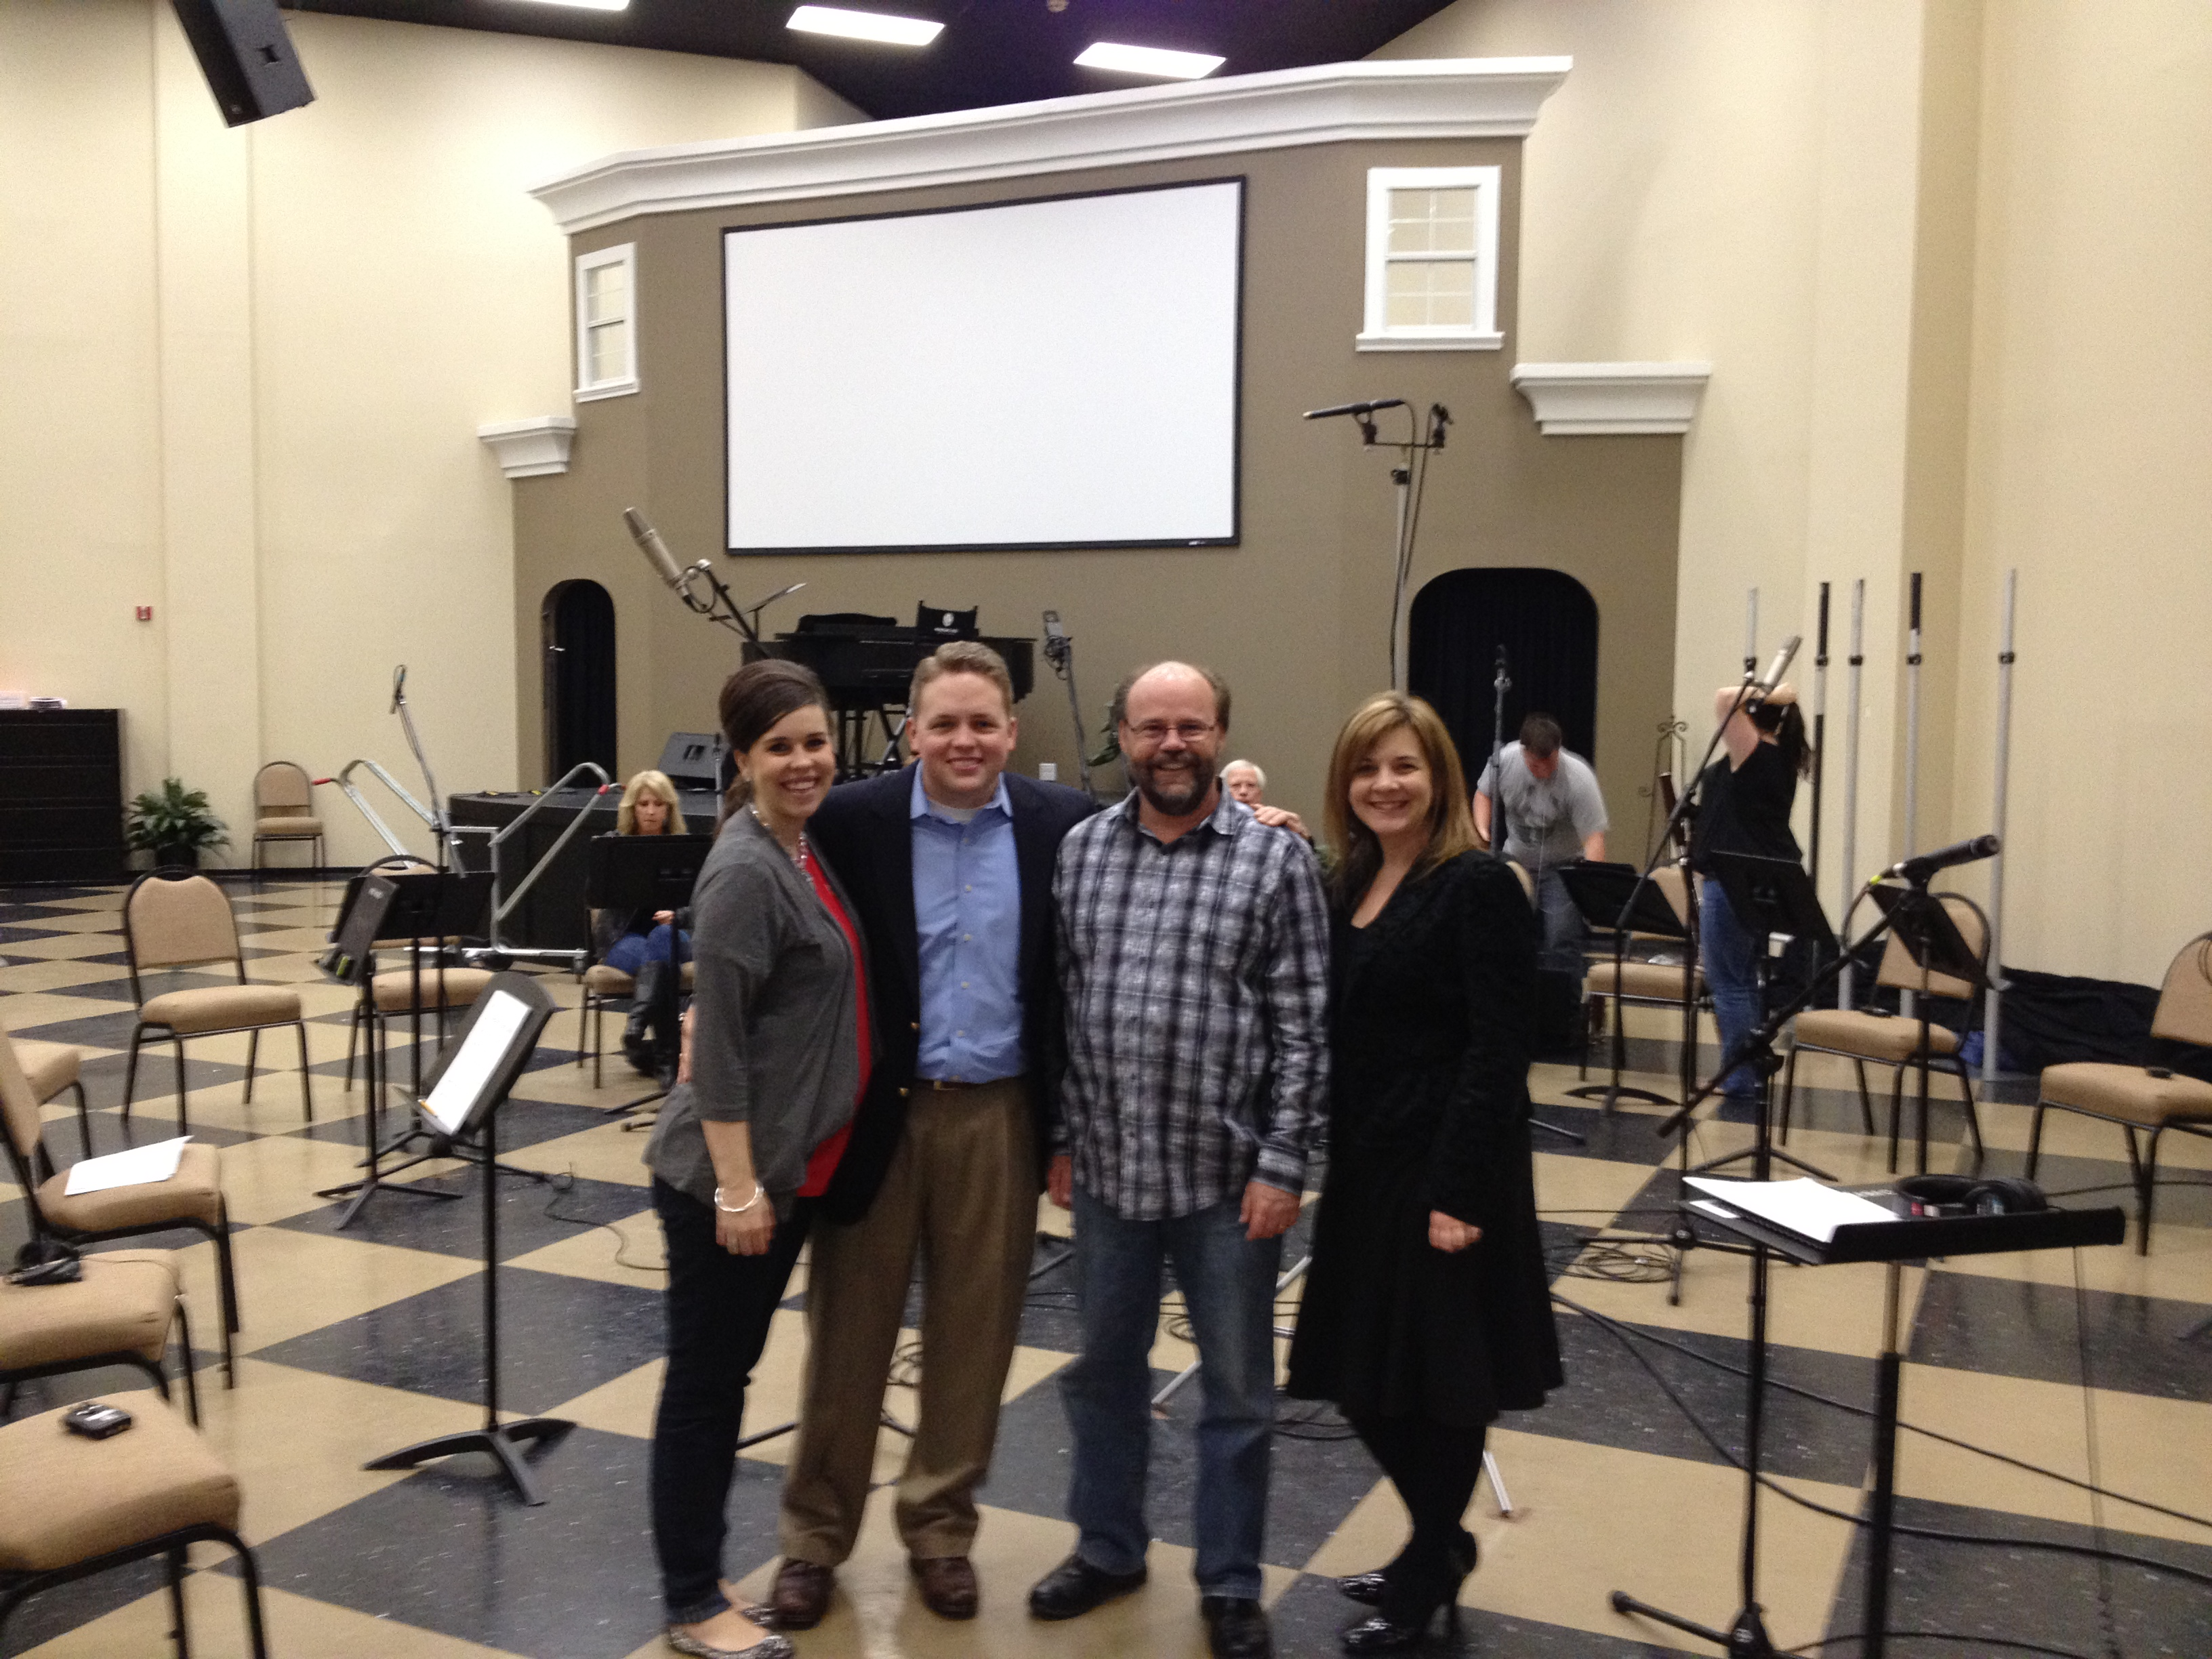 """Paige, John, Randy and Jill in the """"Studio"""""""